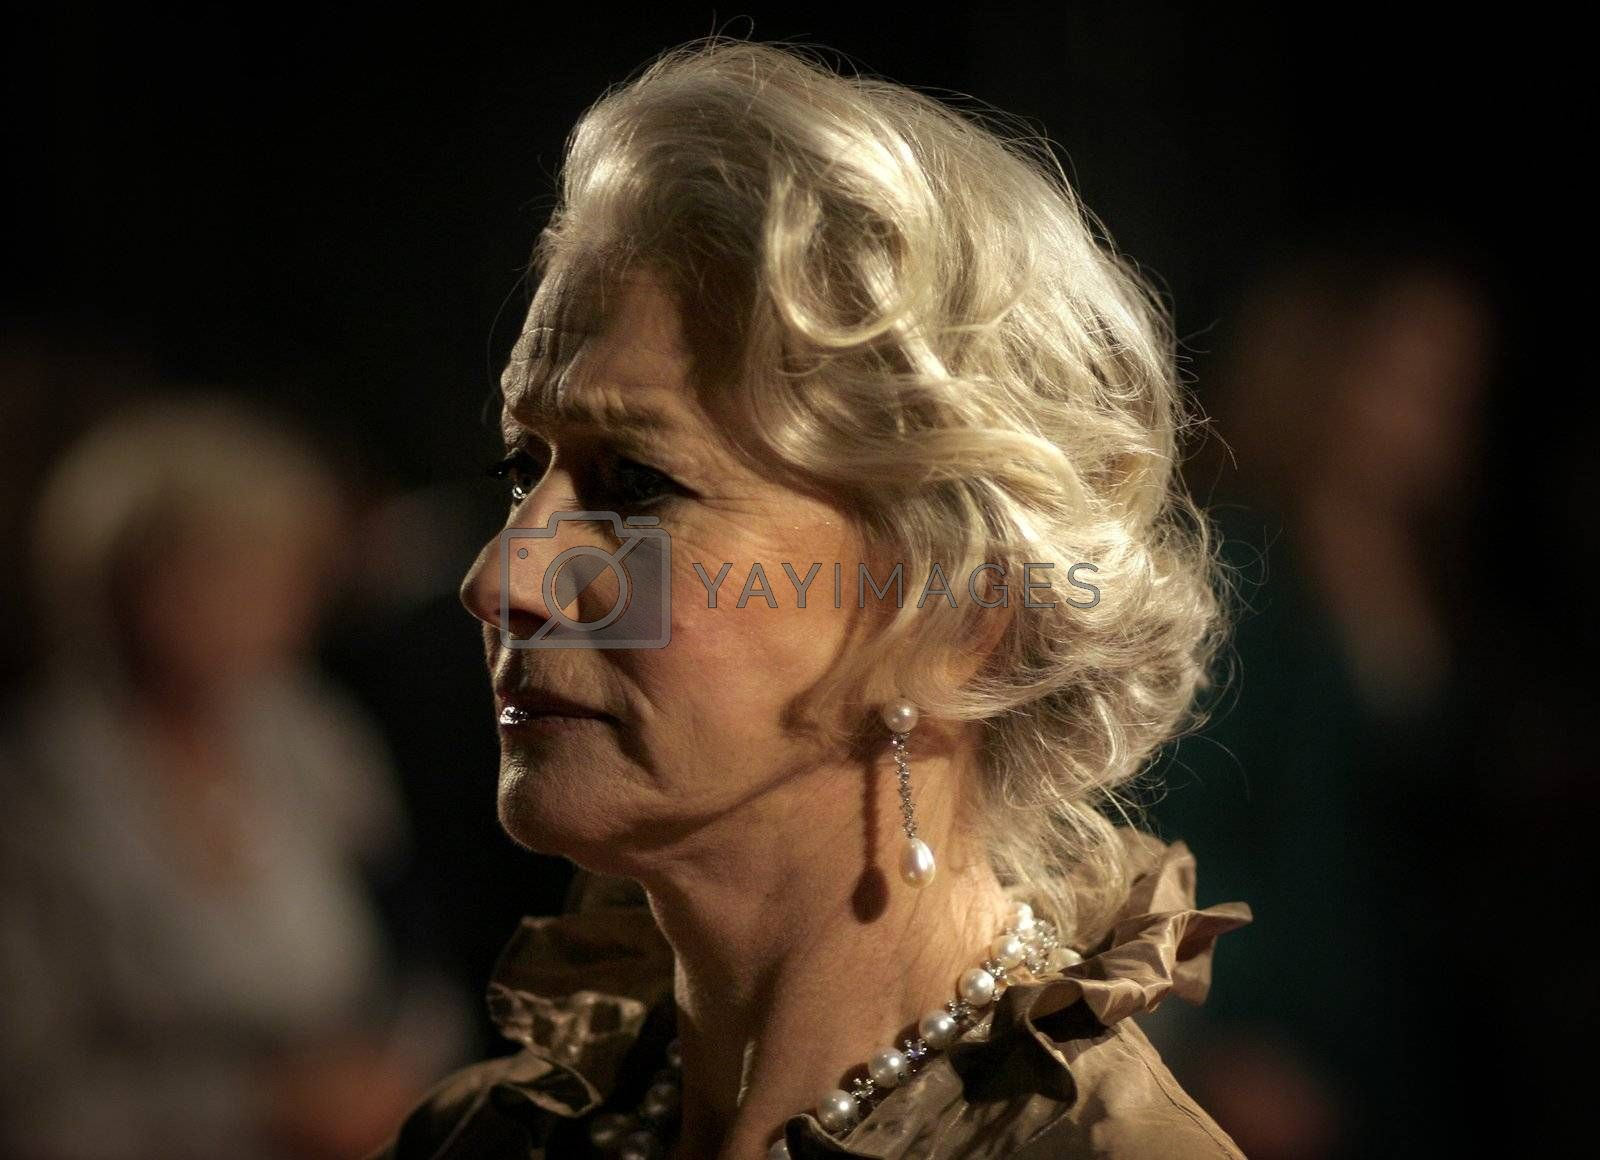 Dame Helen Mirren arrives at the Orange British Academy Film Awards in London's Royal Opera House on February 11